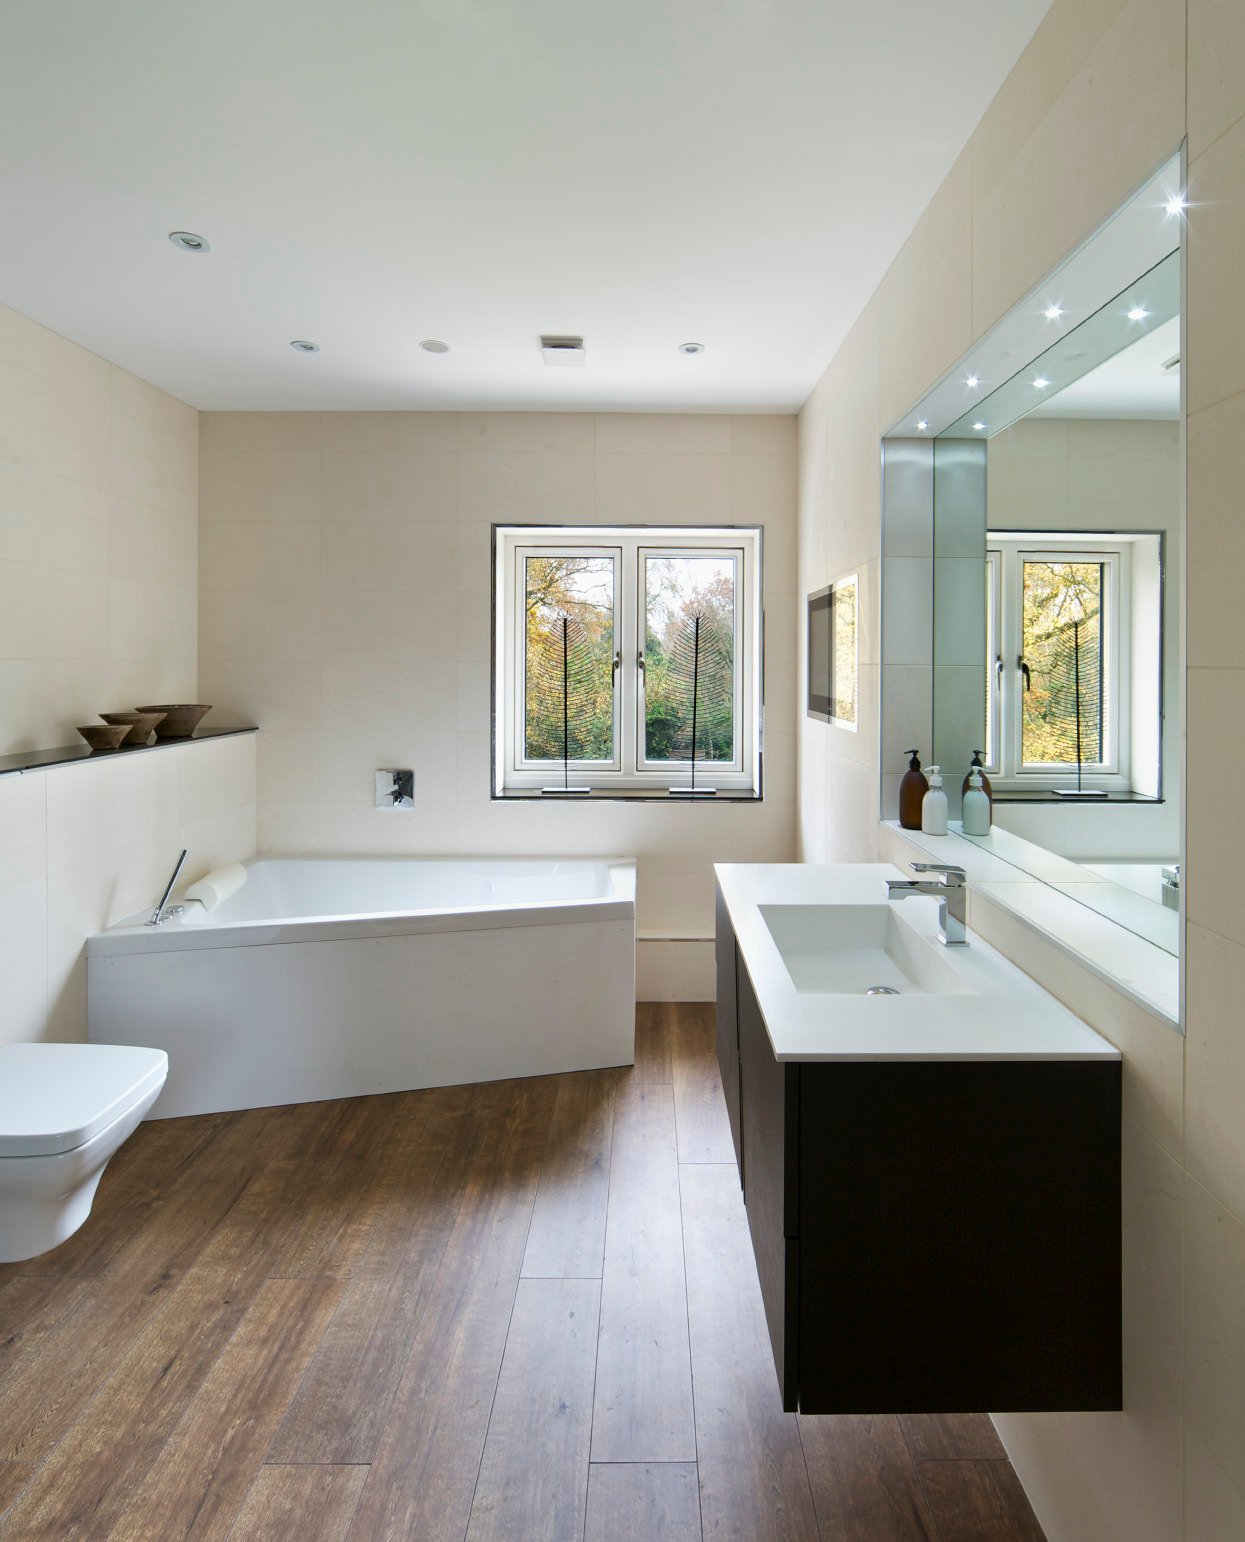 Primary bathroom featuring hardwood flooring and white walls, along with a corner tub and a floating vanity sink.